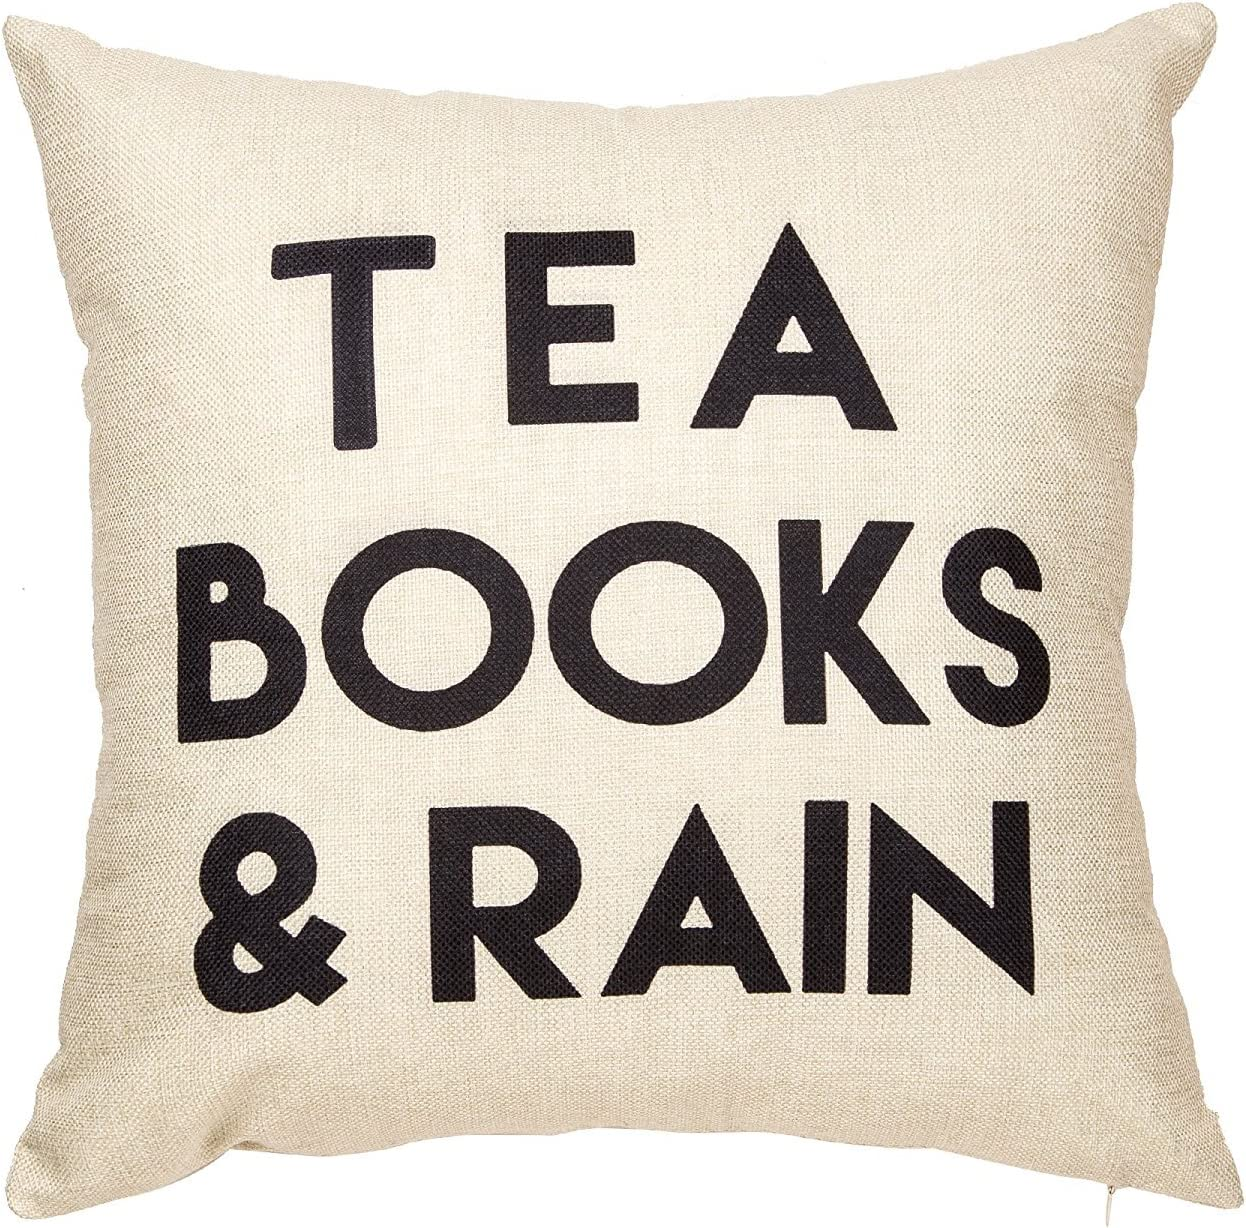 Amazon Com Jbralid Pillowcase Tea Books And Rain Motivational Inspirational Quote Cotton Linen Home Decorative Throw Pillow Case Cushion Cover With Words For Book Lover Worm Sofa Couch 20x20 In Home Kitchen